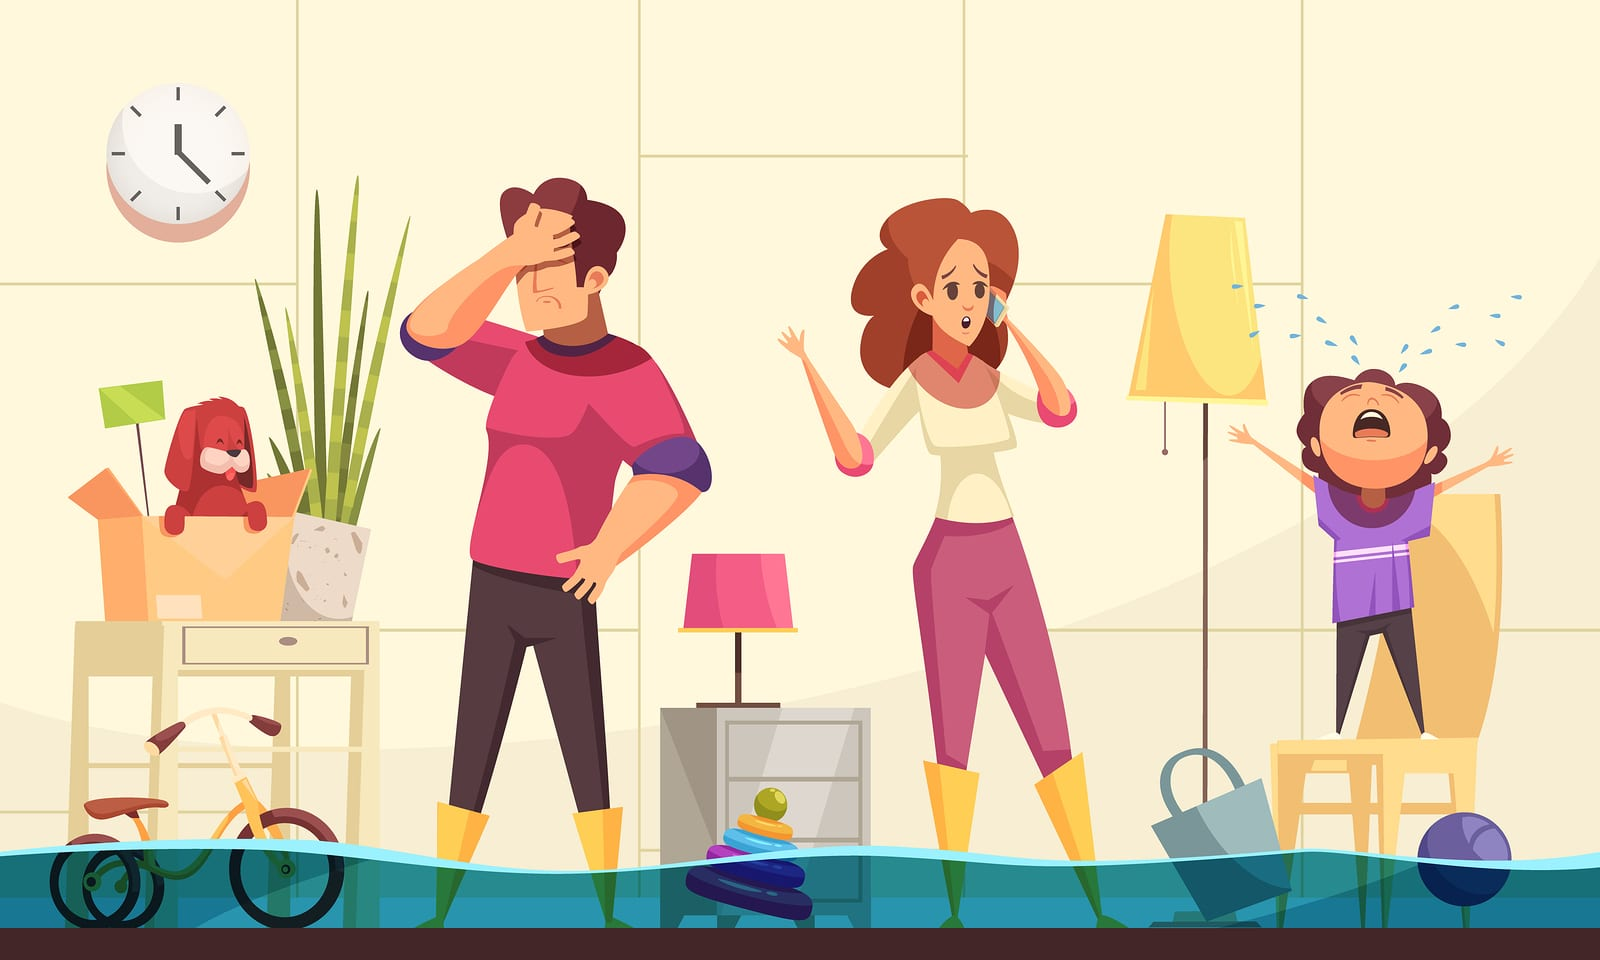 Flooded house emergency flat cartoon image with family home calling plumber to fix burst pipes vector illustration